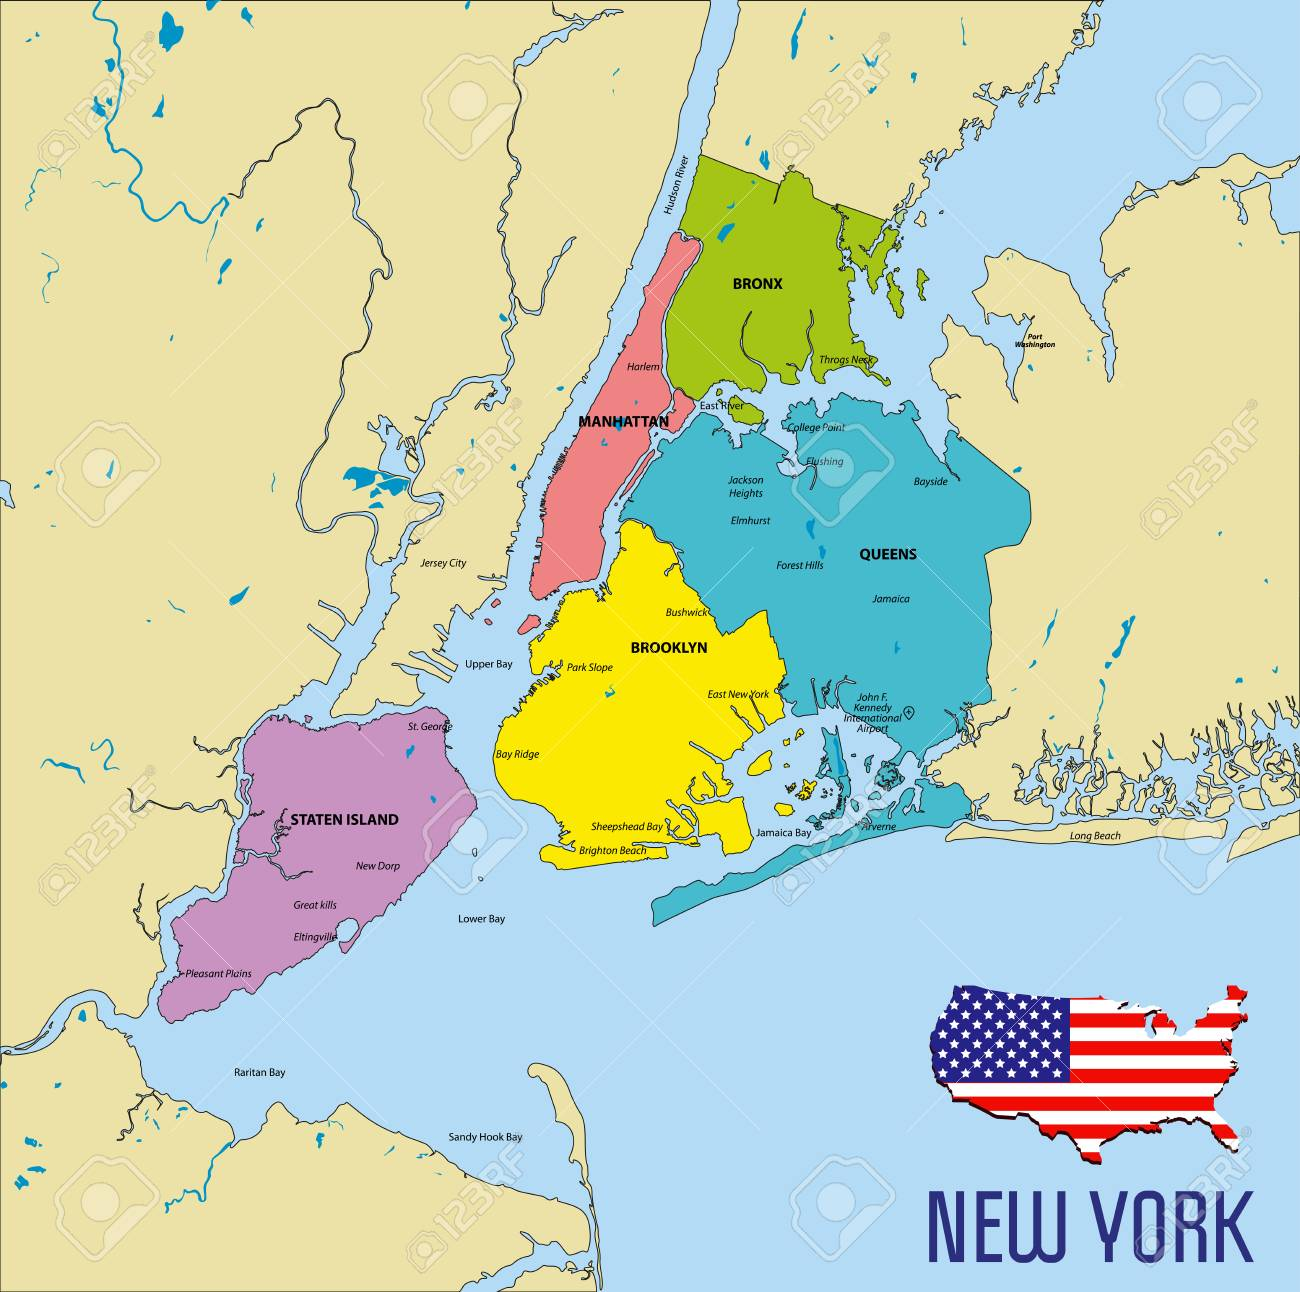 Map Of New York Rivers.Vector Highly Detailed Political Map Of New York With All Regions